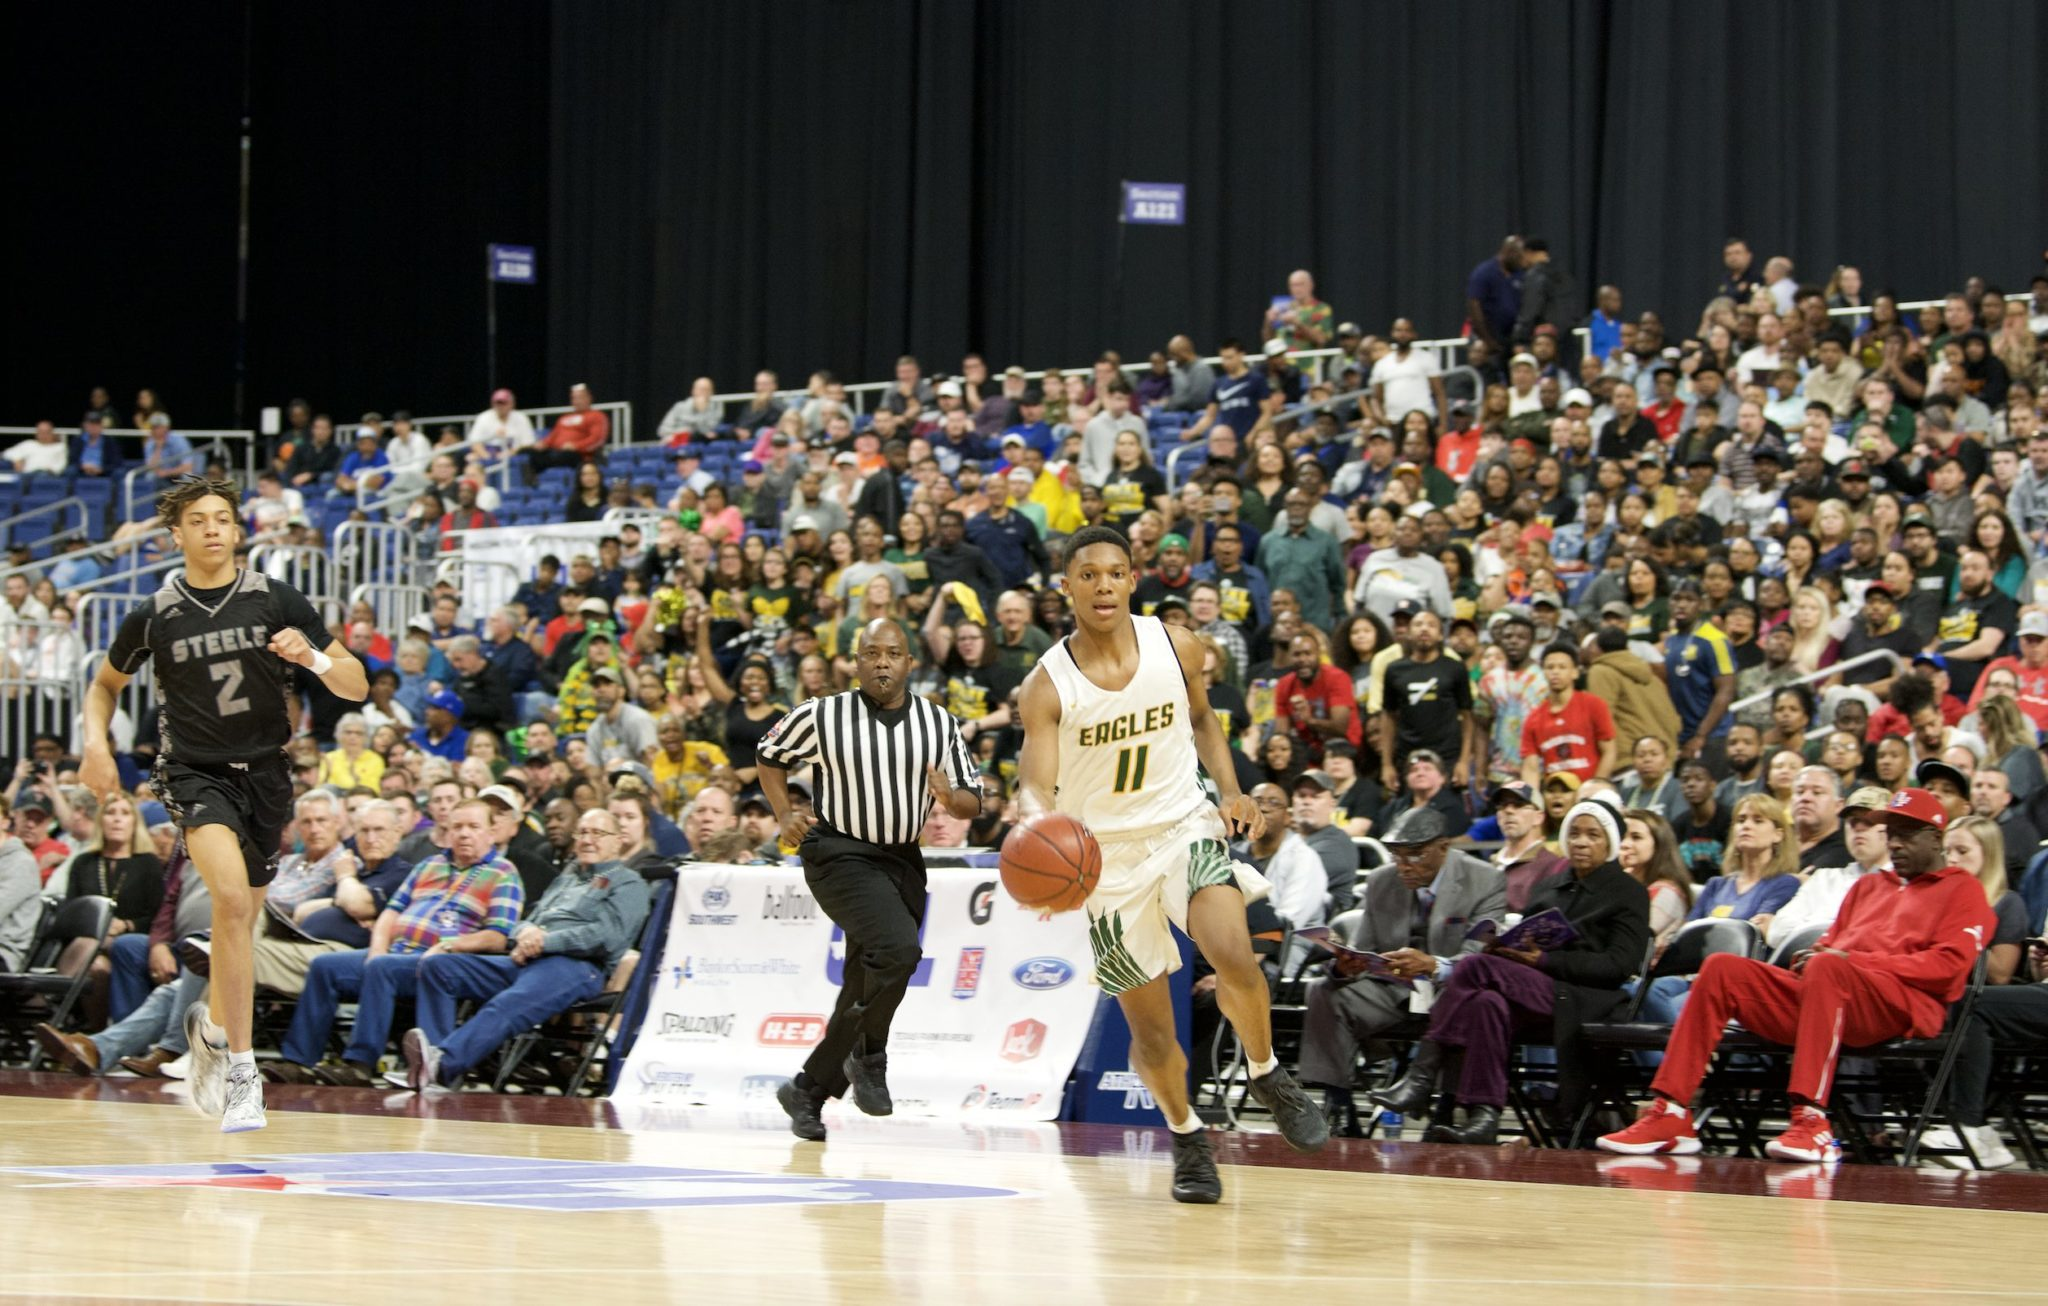 Klein Forest Defeats Cibolo Steele And Advances To State